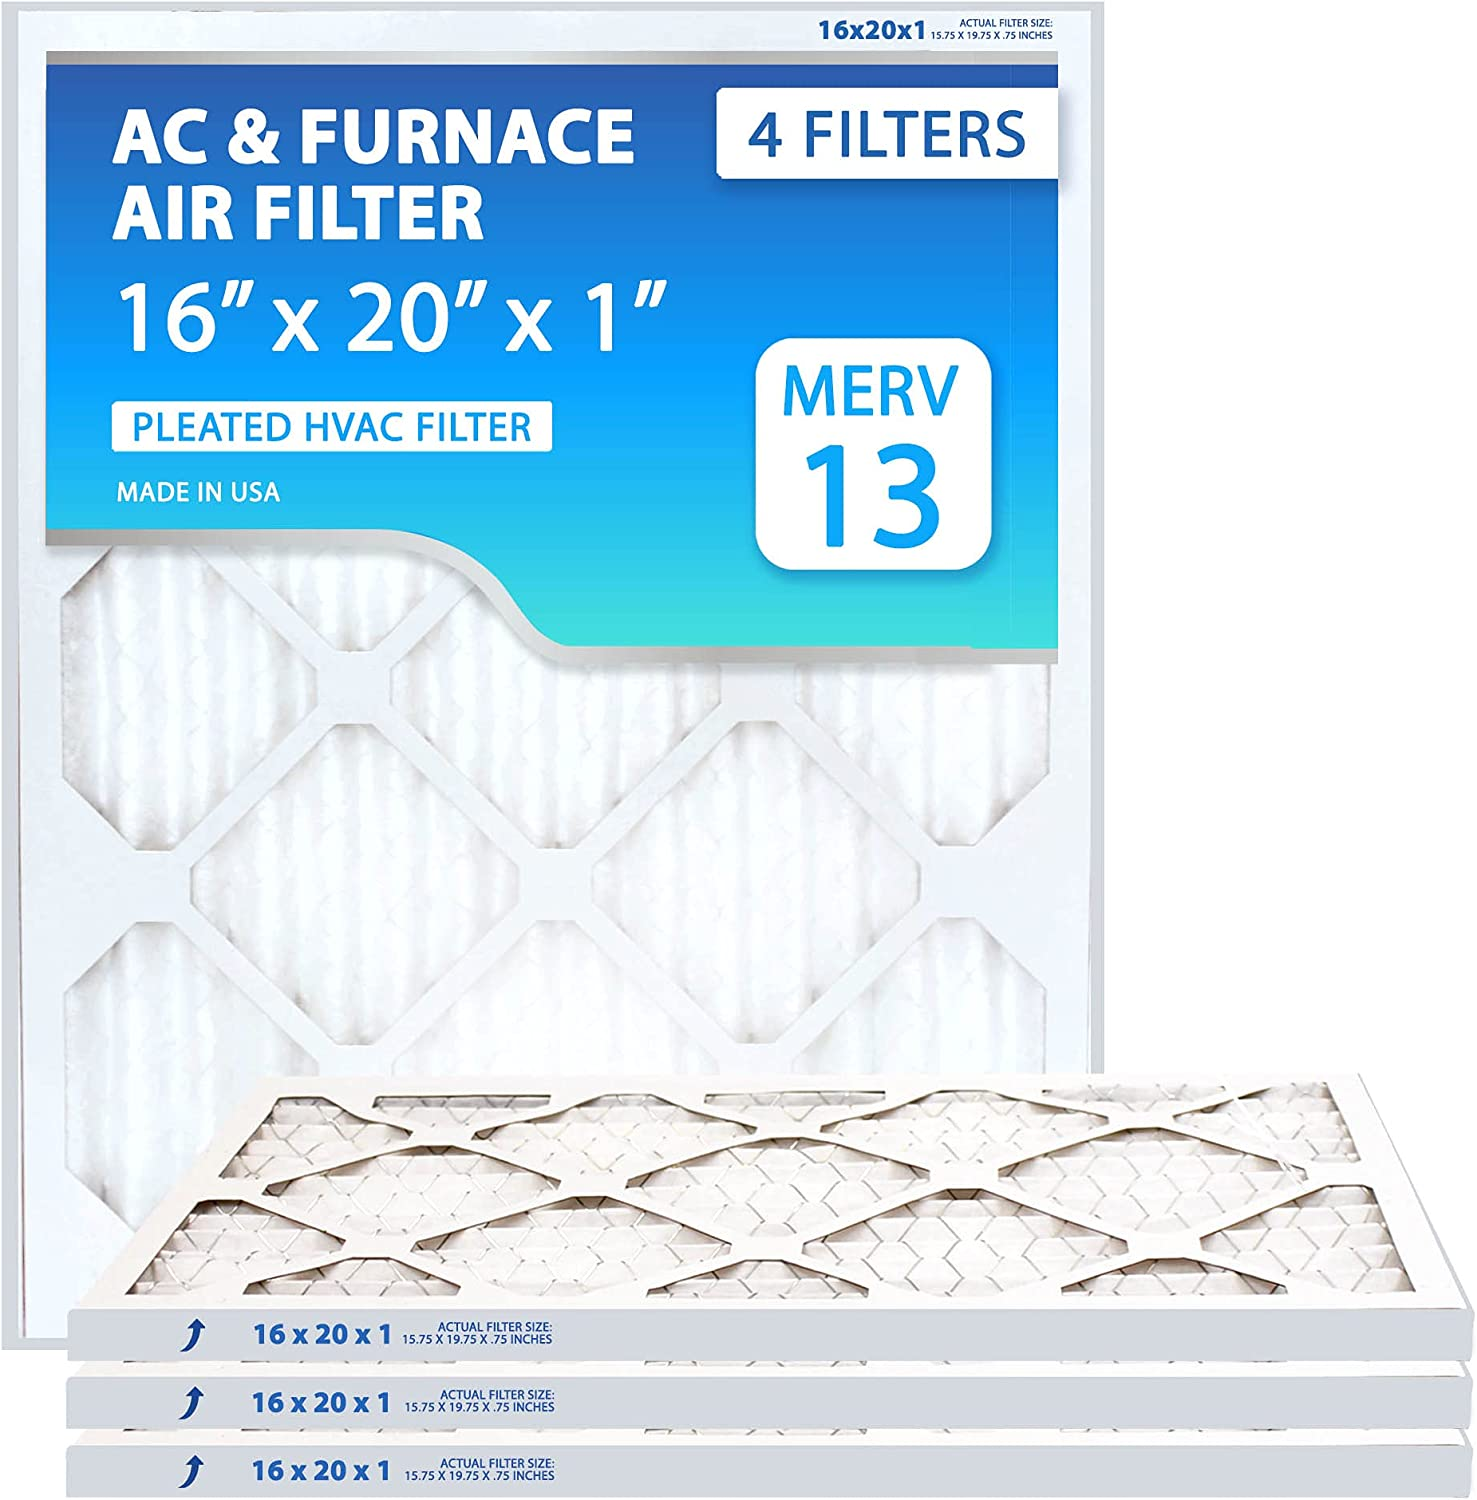 (4 PACK) MERV 13 Air Purifying HVAC filters: 16x20x1 Air Filter (MPR 1500-1900, FPR 10). Furnace Filters 16x20x1 Vent Replacement Filter, Clean Air Dust Filters, Made In America